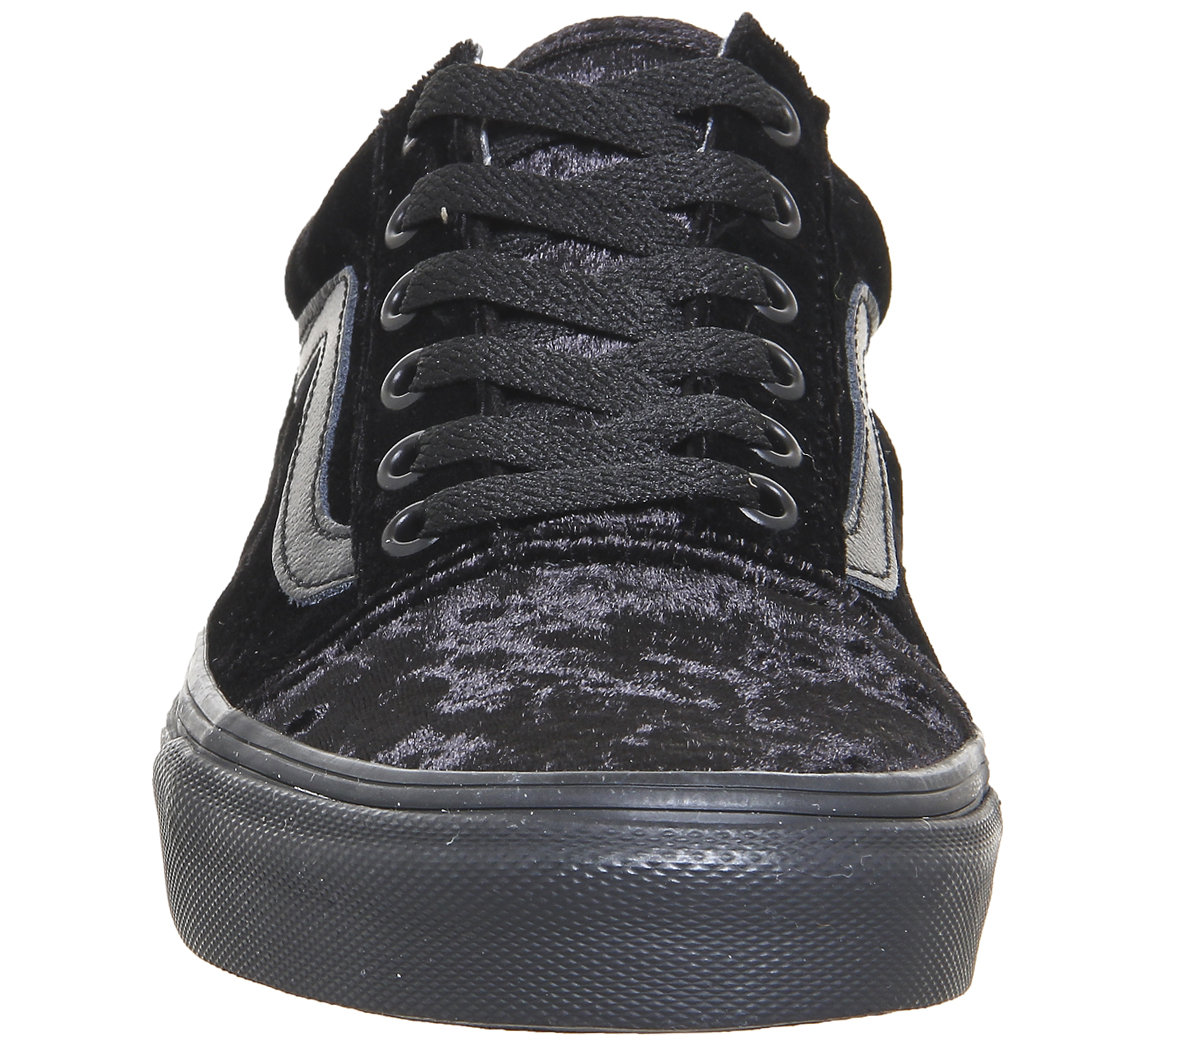 ca7fe21c82 Sentinel Womens Vans Old Skool Trainers VELVET BLACK BLACK Trainers Shoes